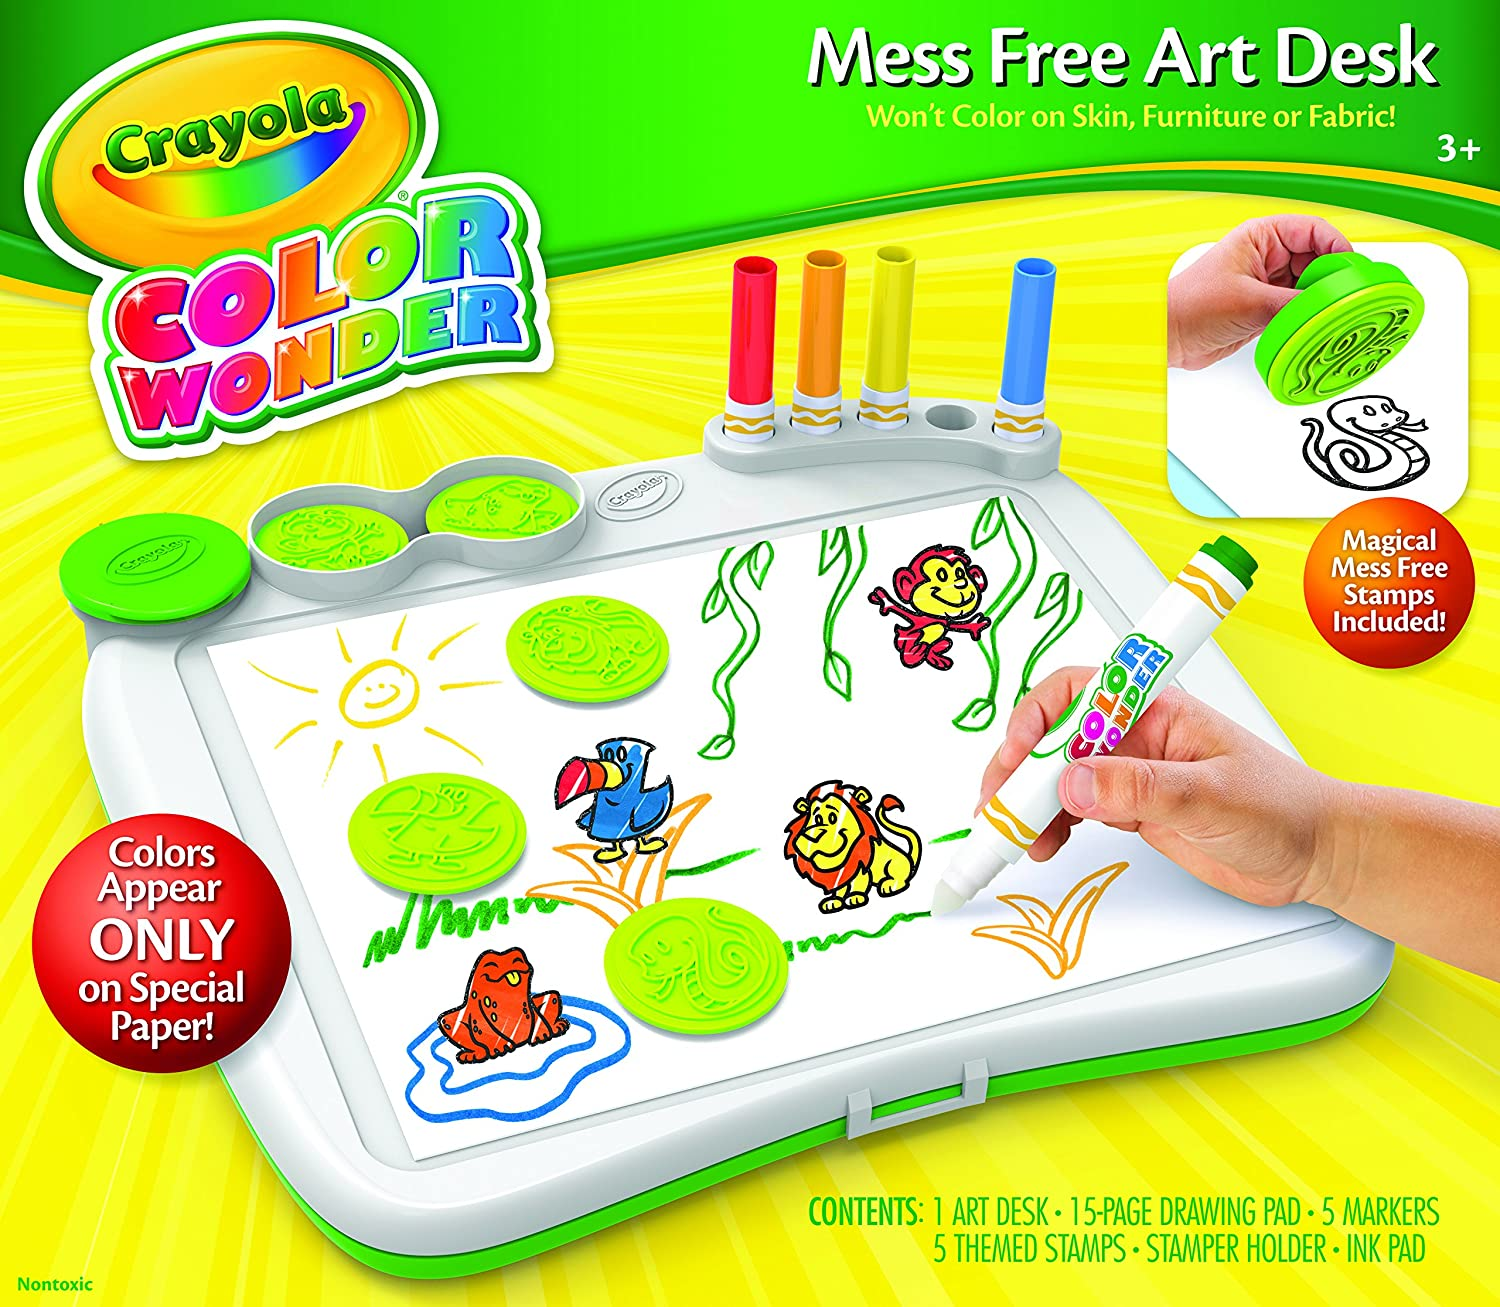 Amazon.com: Crayola Color Wonder Art Desk with Stamper: Toys & Games